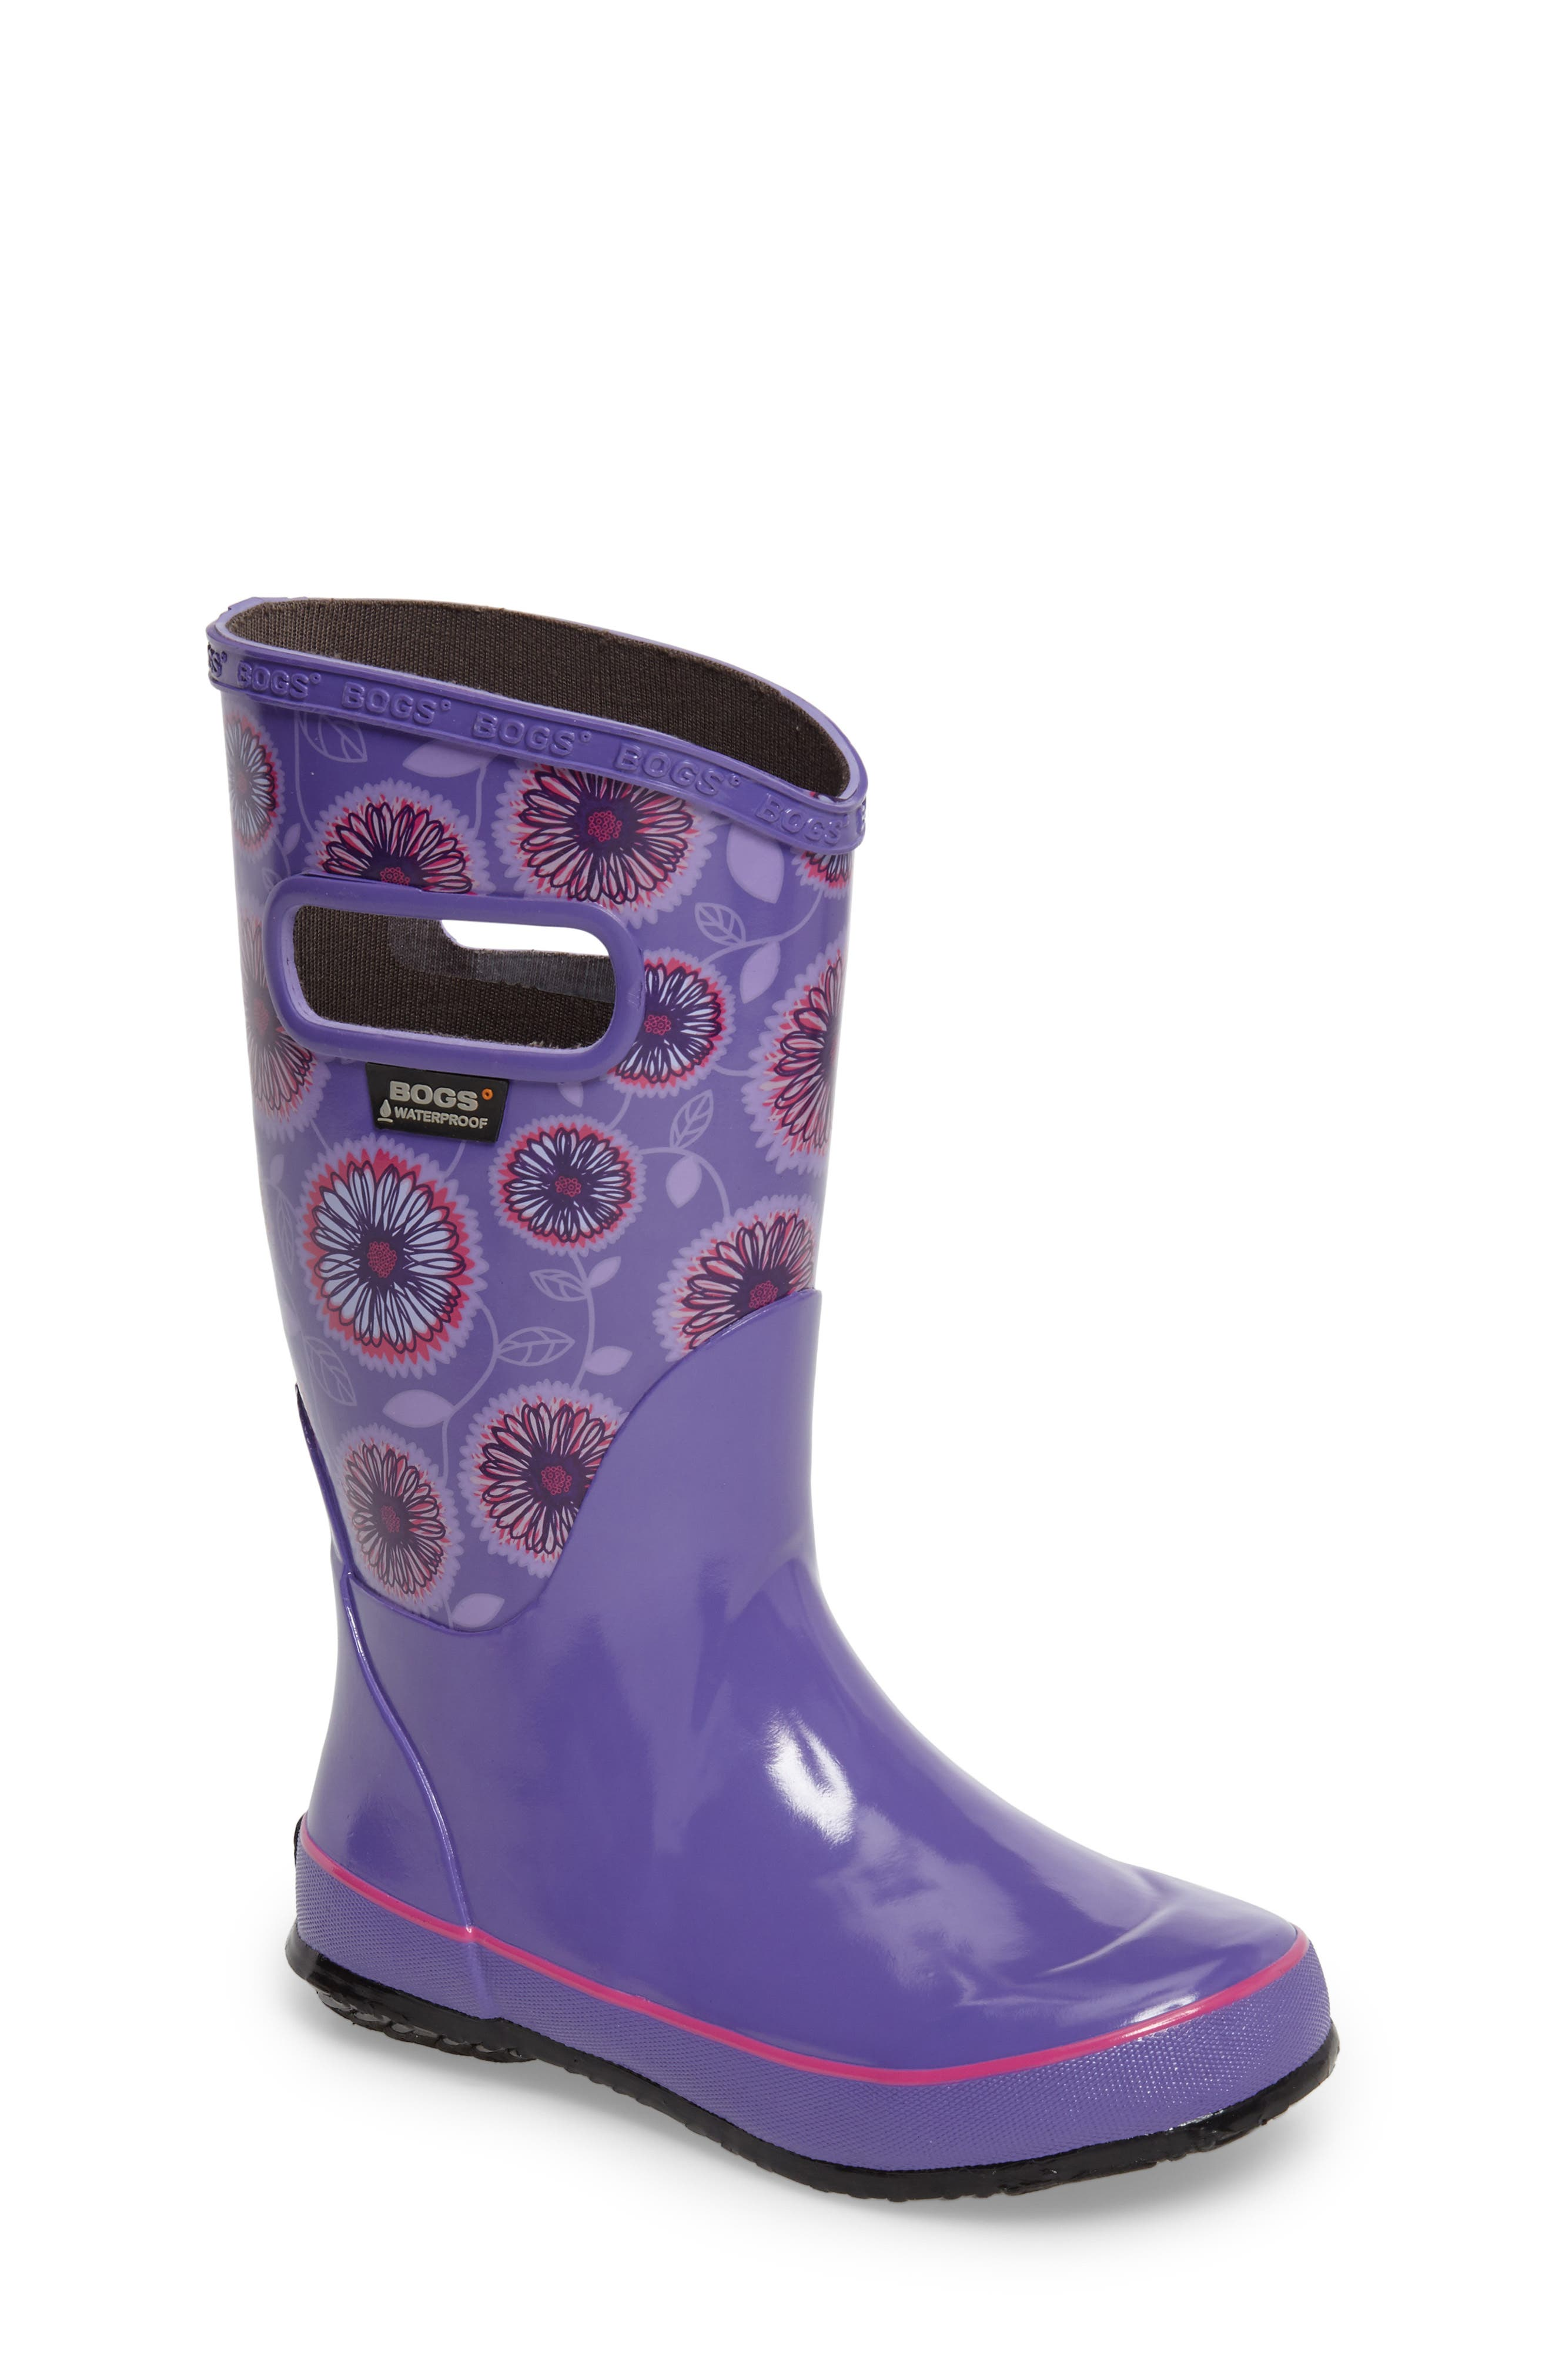 Wildflowers Rubber Rain Boot,                             Main thumbnail 1, color,                             500